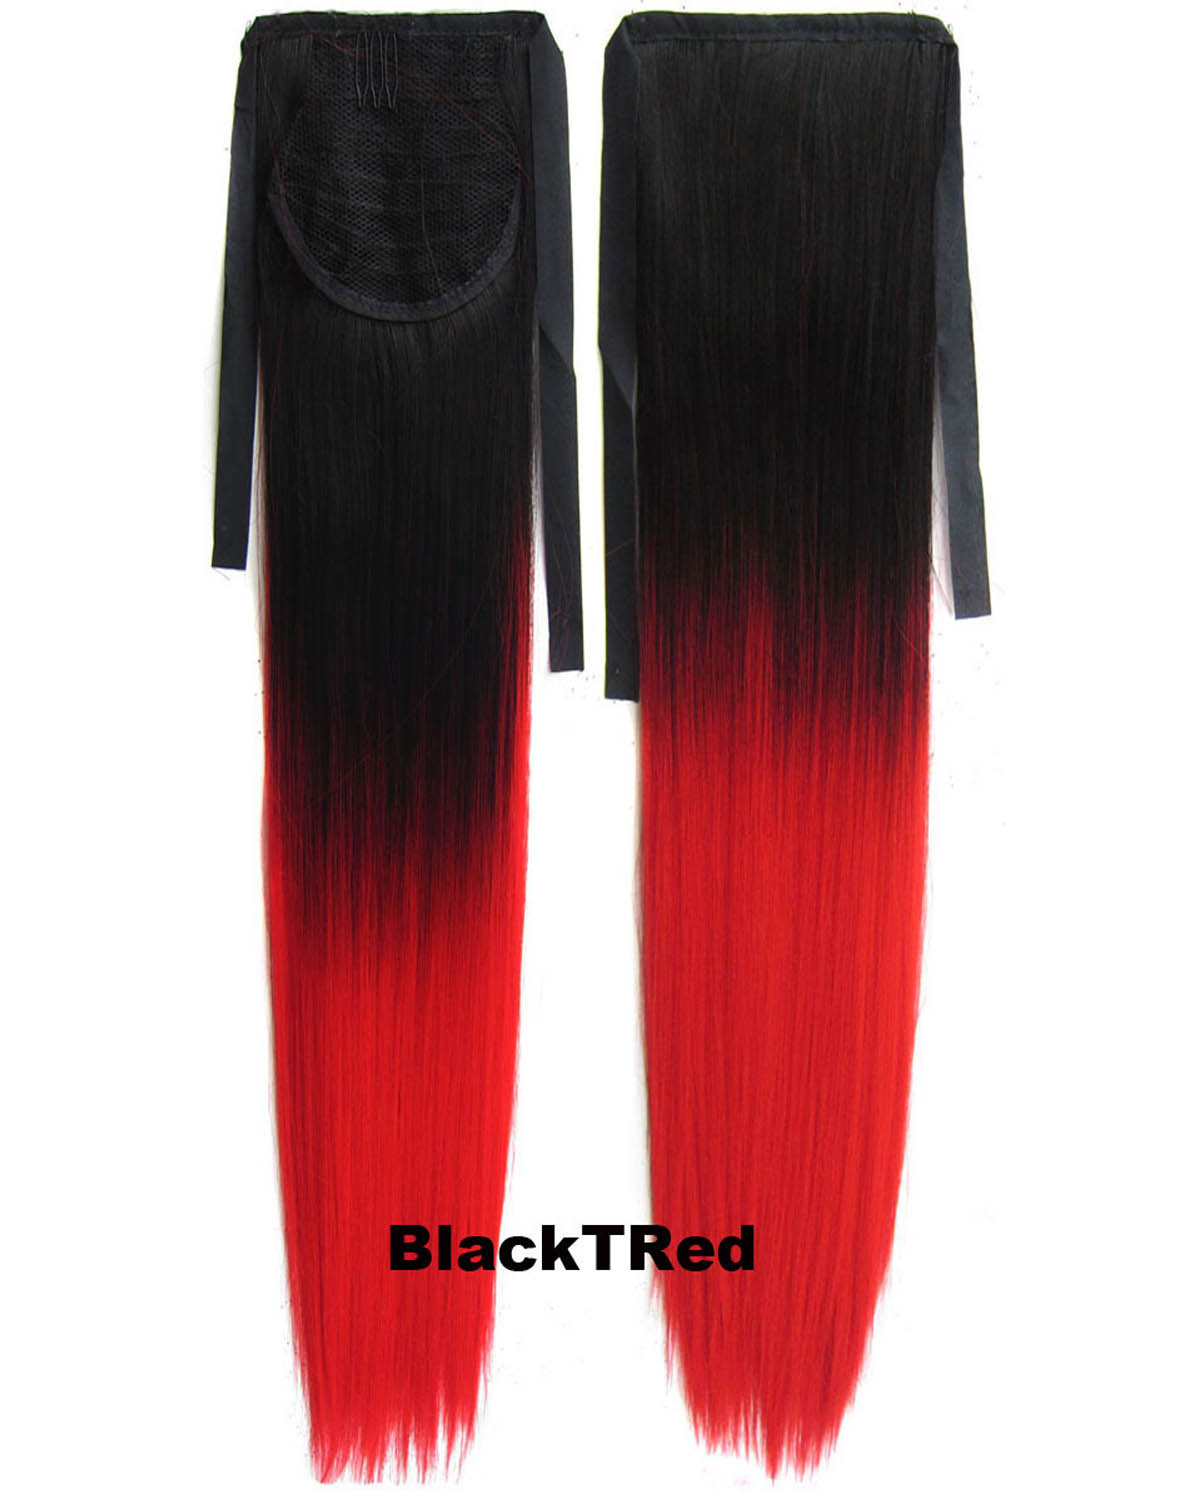 22 Inch Lady Straight and Long Lace/Ribbon Synthetic Hair Ponytail Ombre BlackTRed Charming